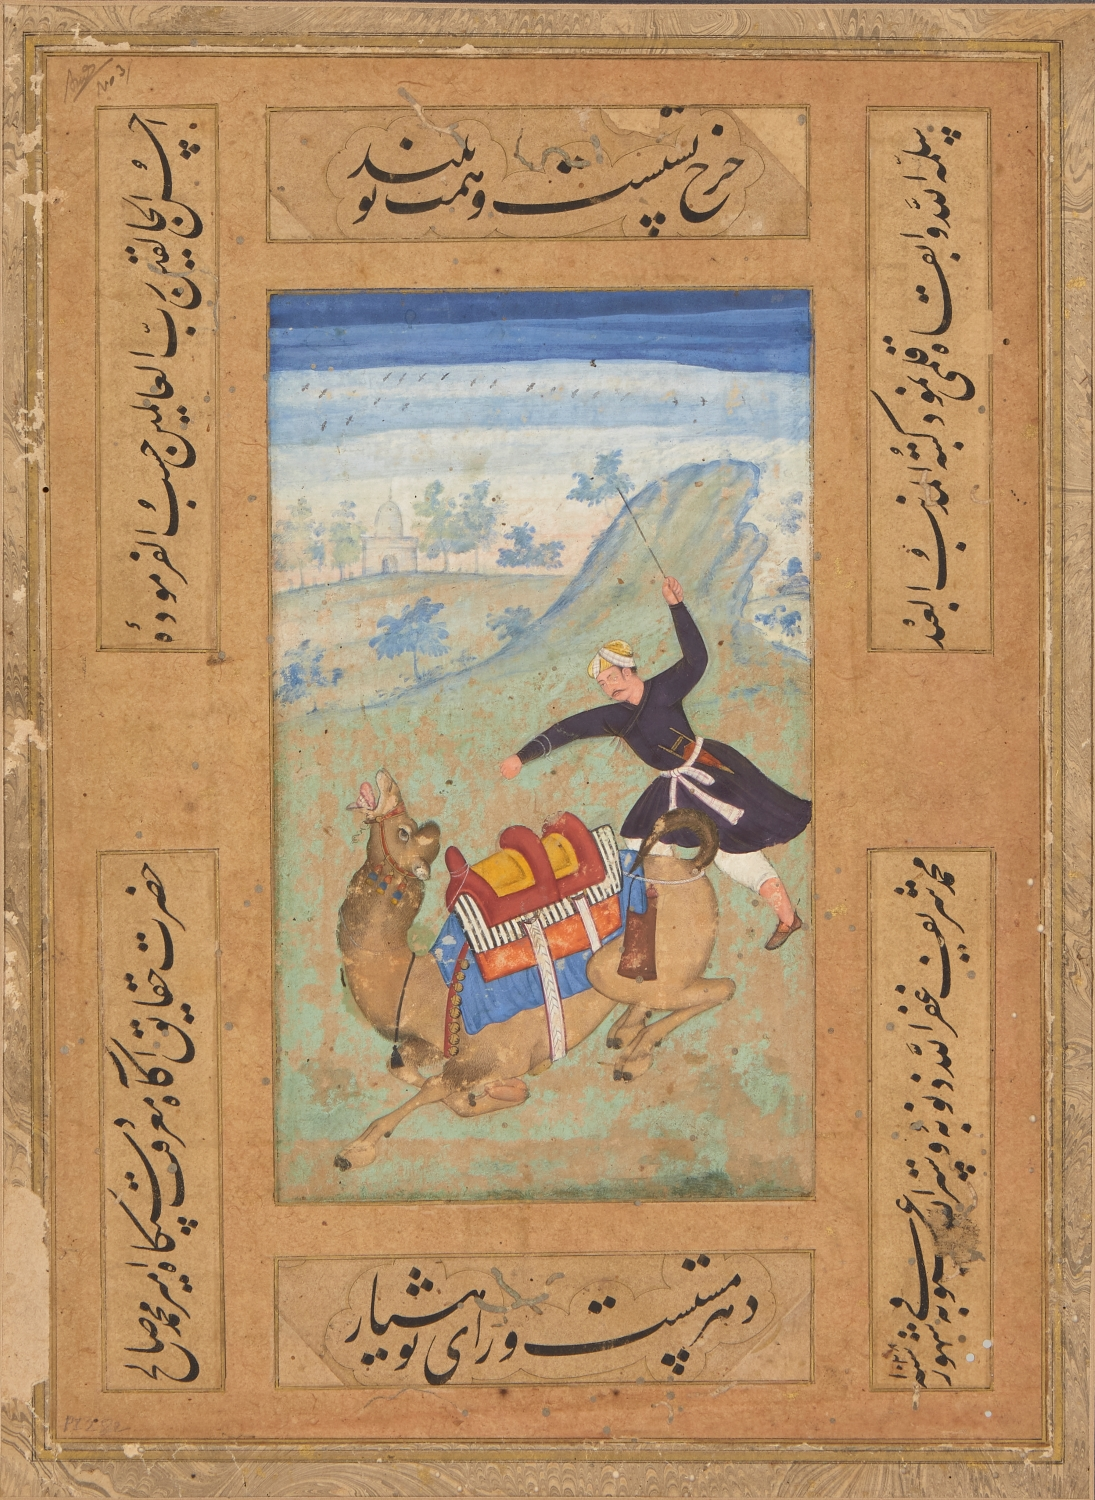 A Mughal painting of a camel driver, India, circa 1610, 24 x 17cm. from an Important Private Collection, £3000-4000